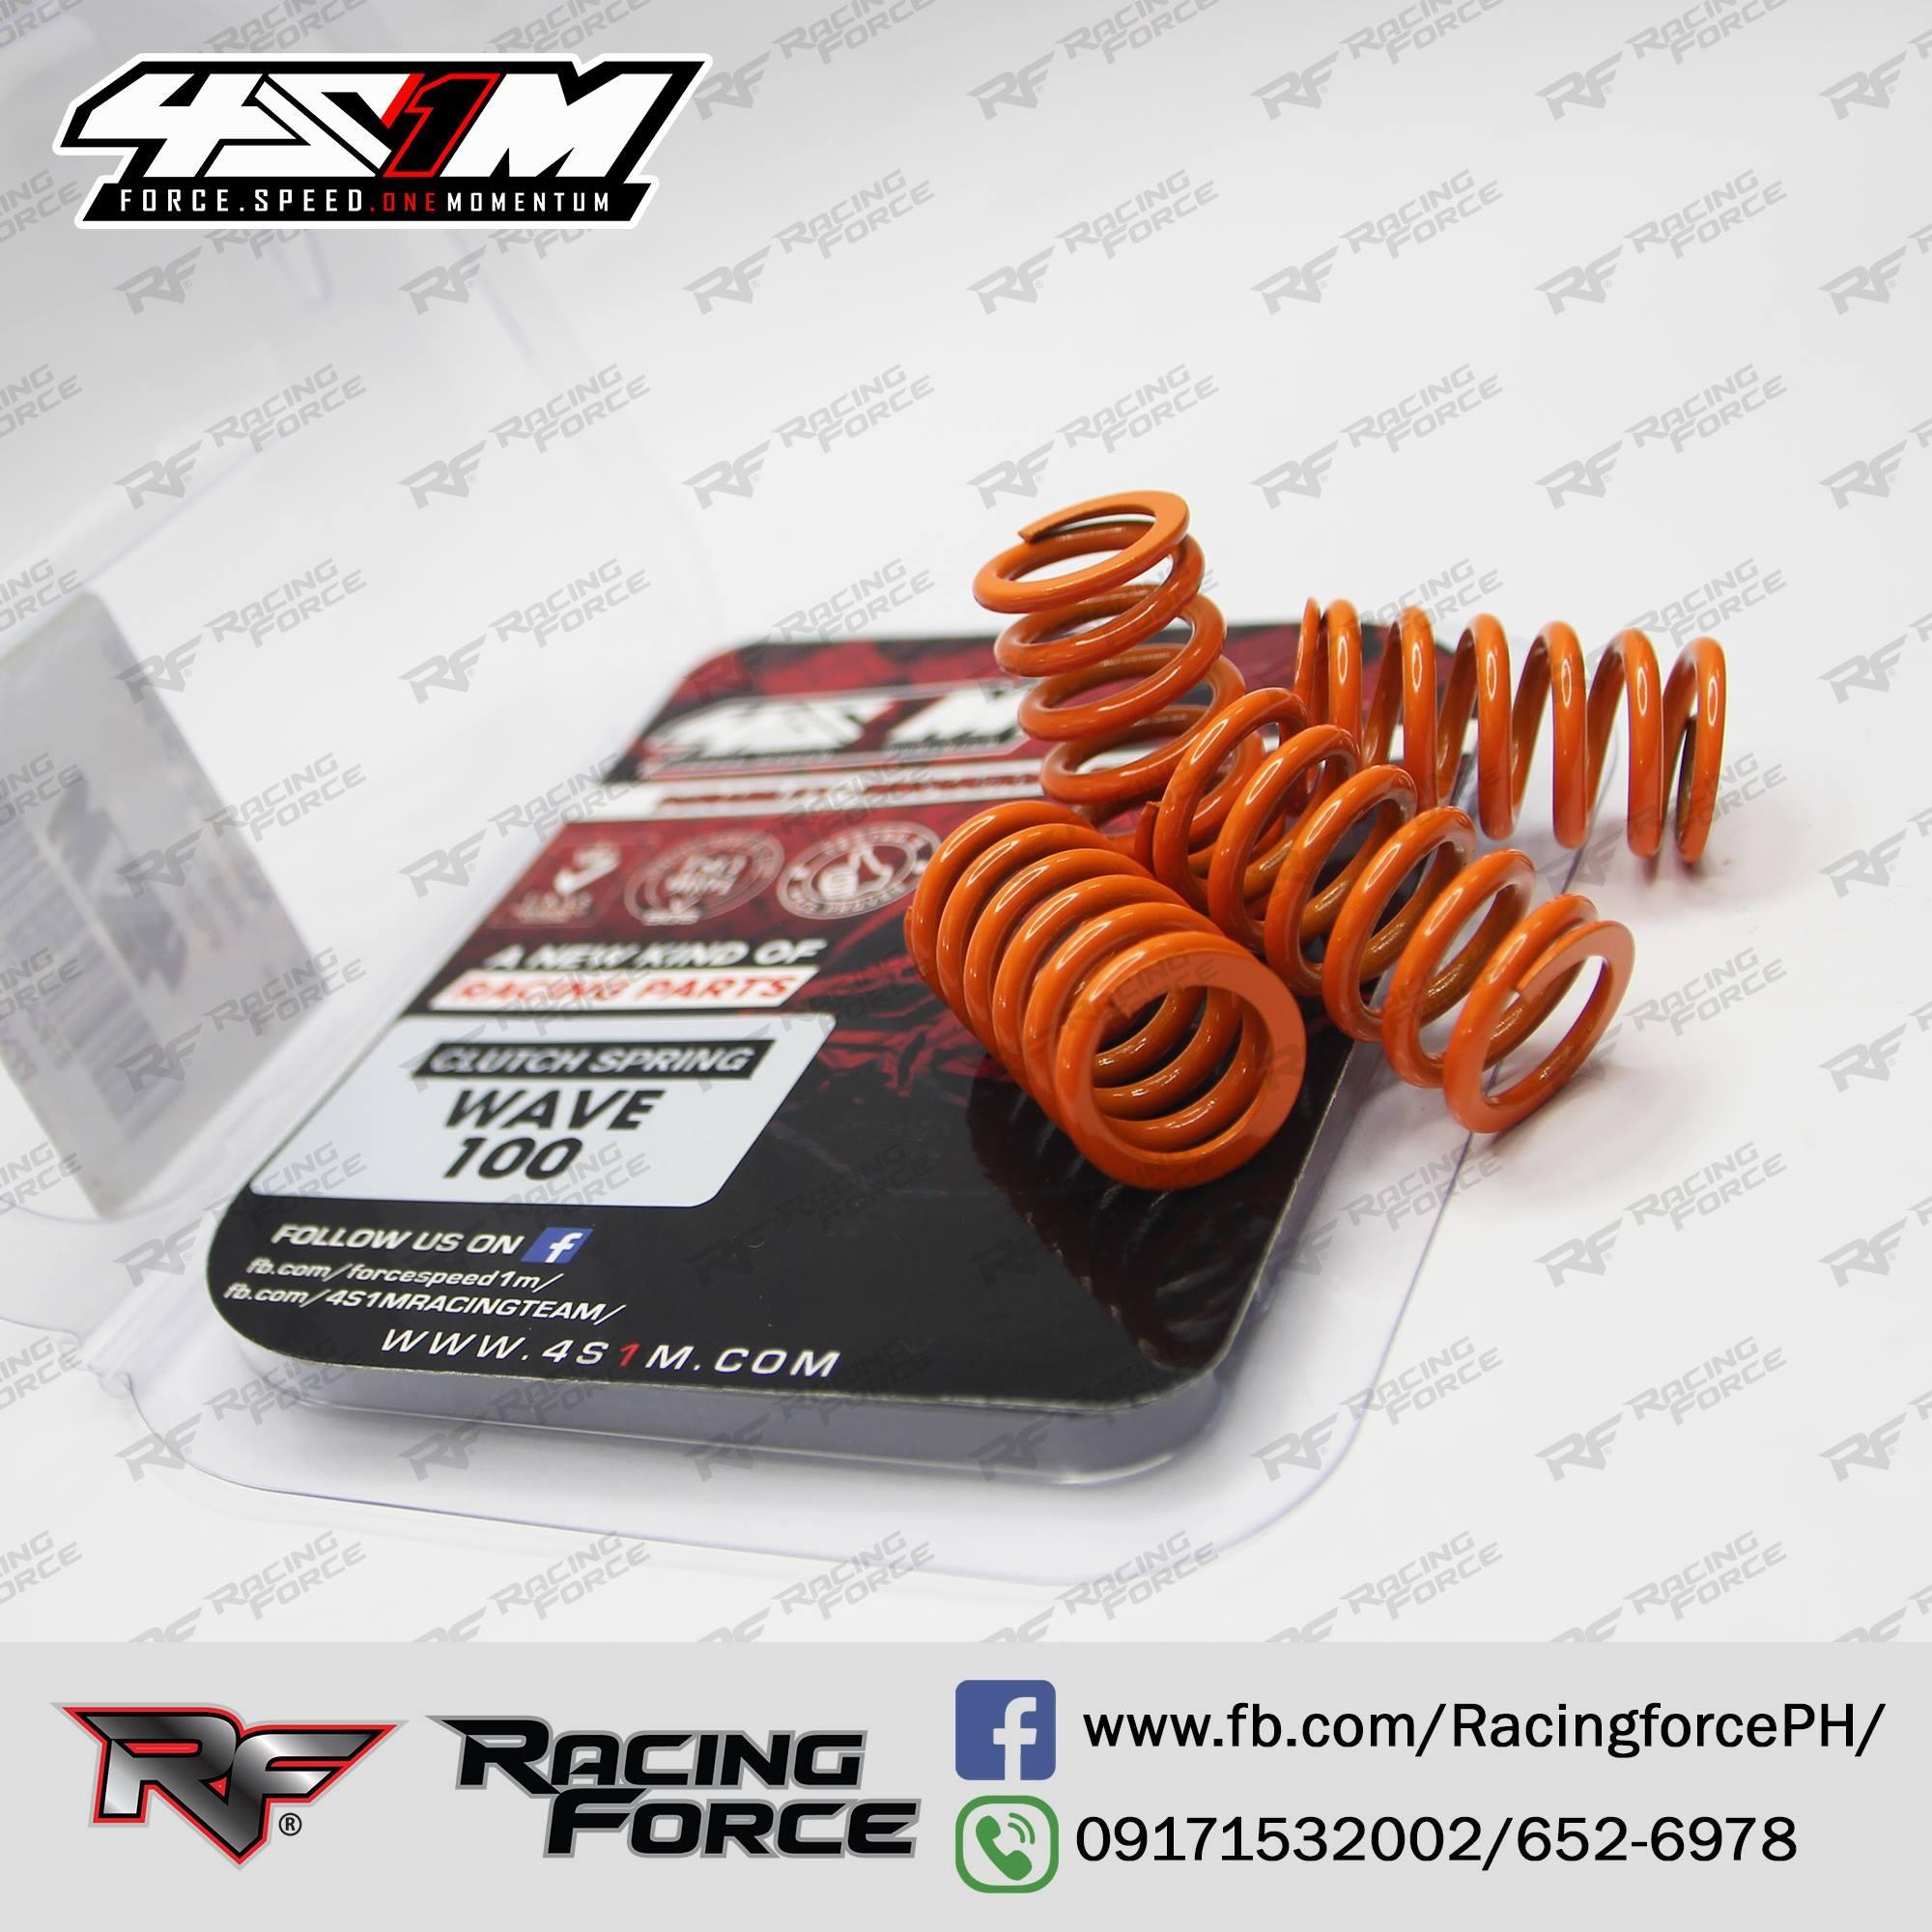 4s1m Clutch Spring For Wave 100 By Racing Force Marketing.